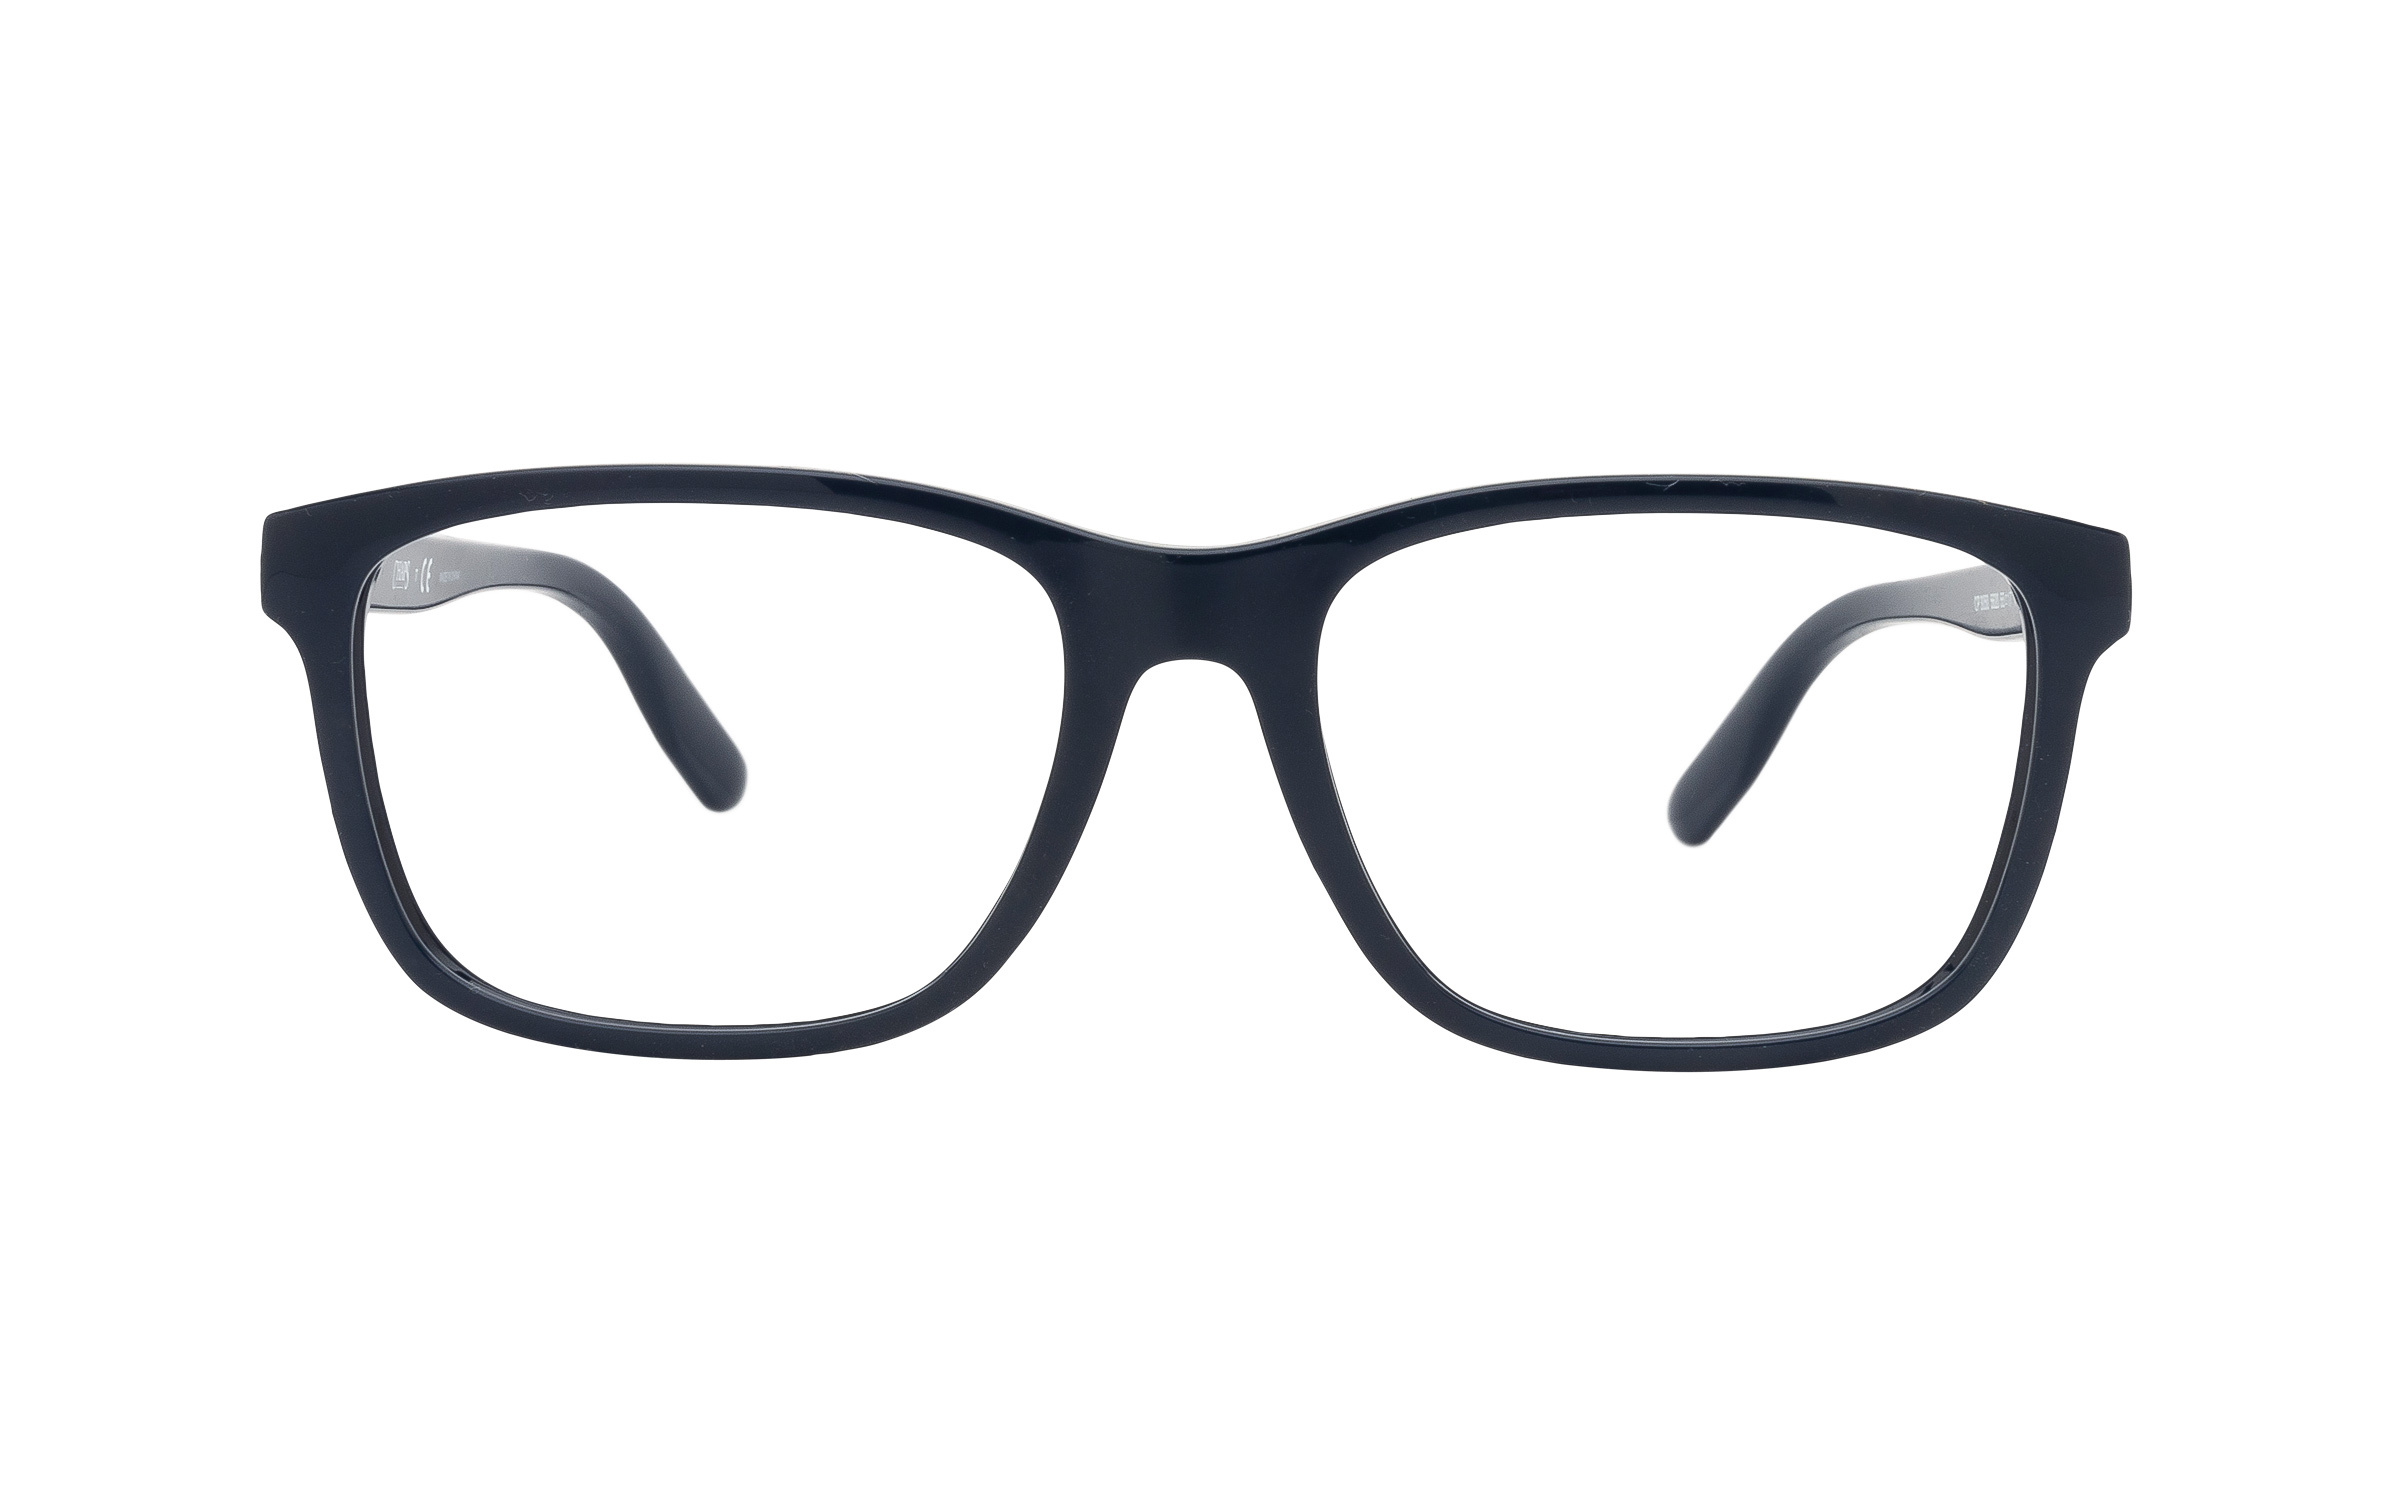 http://www.coastal.com/ - Chaps CP3050 5620 (55) Eyeglasses and Frame in Navy Blue | Acetate – Online Coastal